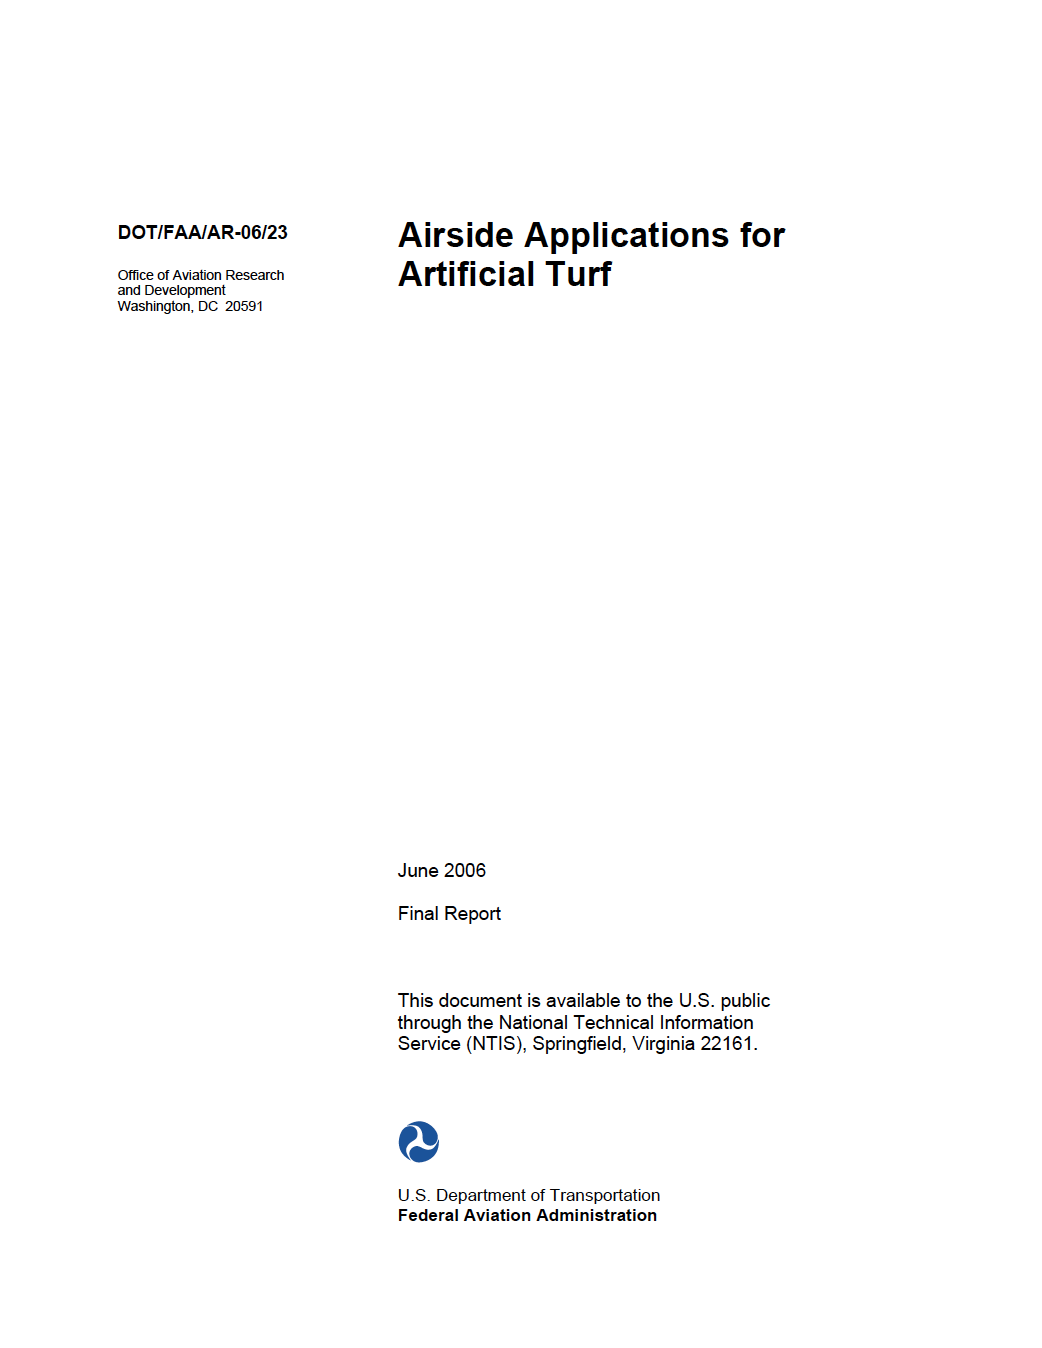 Airside Applications for Artificial Turf